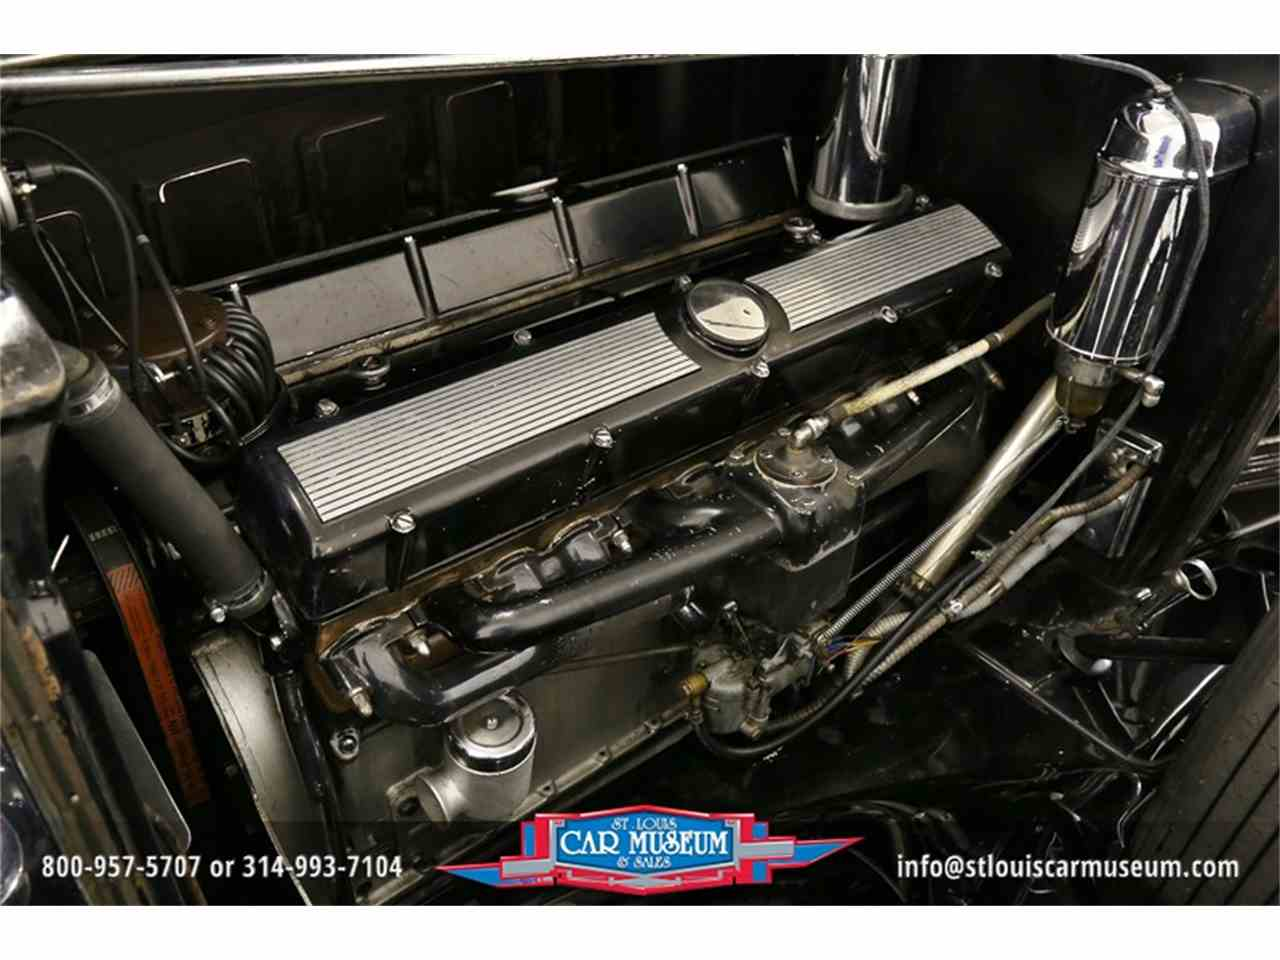 Large Picture of 1931 Cadillac V-16 Madam X Landau Sedan located in Missouri - $374,900.00 Offered by St. Louis Car Museum - JSU3